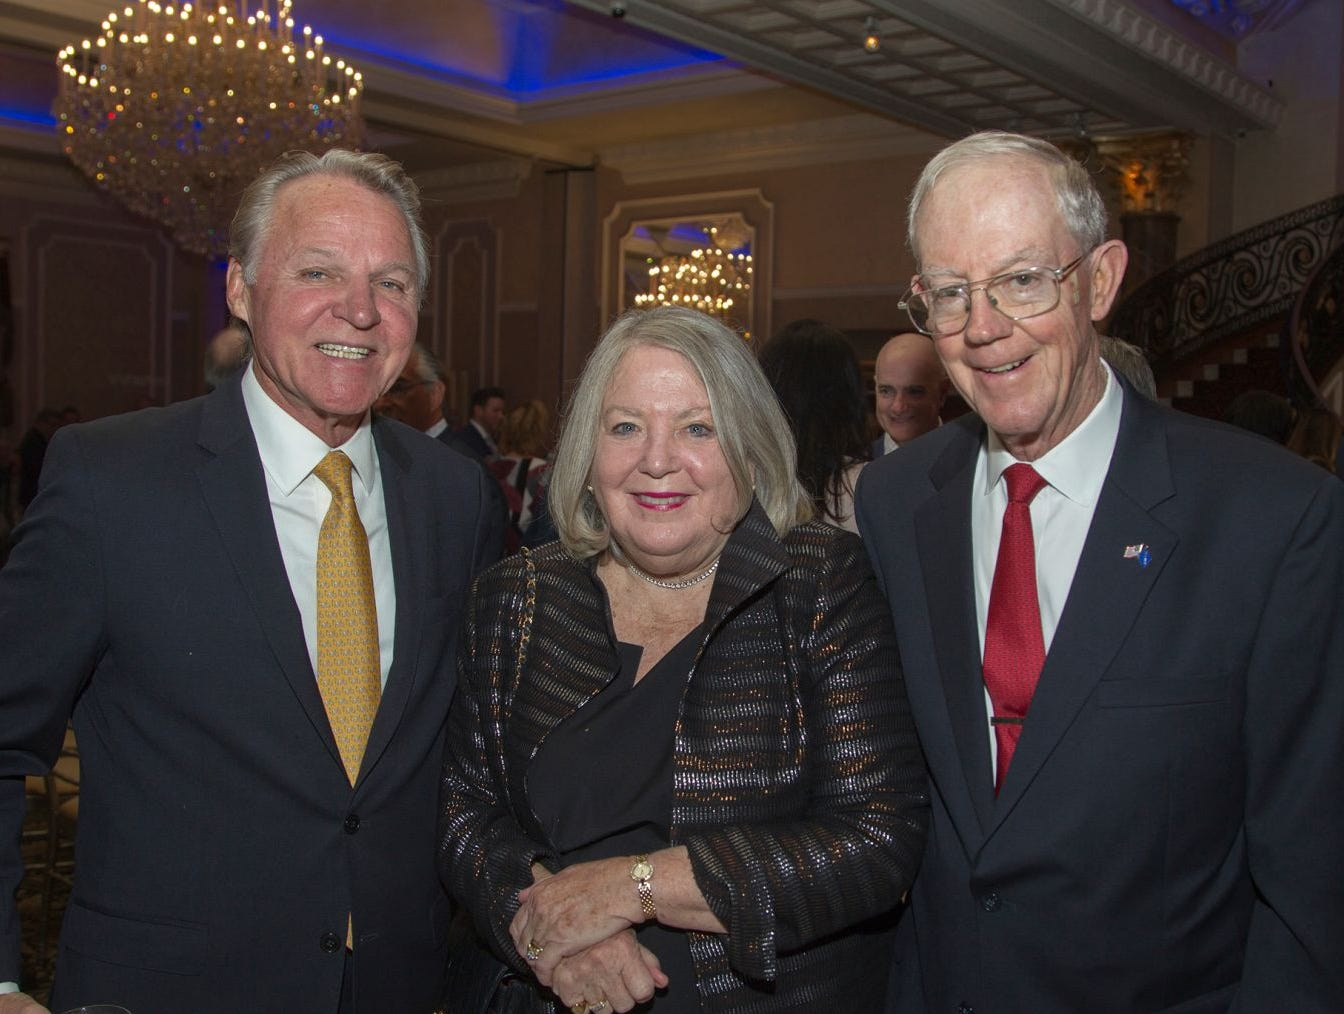 Dan Leber, Marge and Jack Geraghty. , Holy Name Medical Center held its 2018 MS Center Awards Reception at the Venetian in Garfield. 10/23/2018